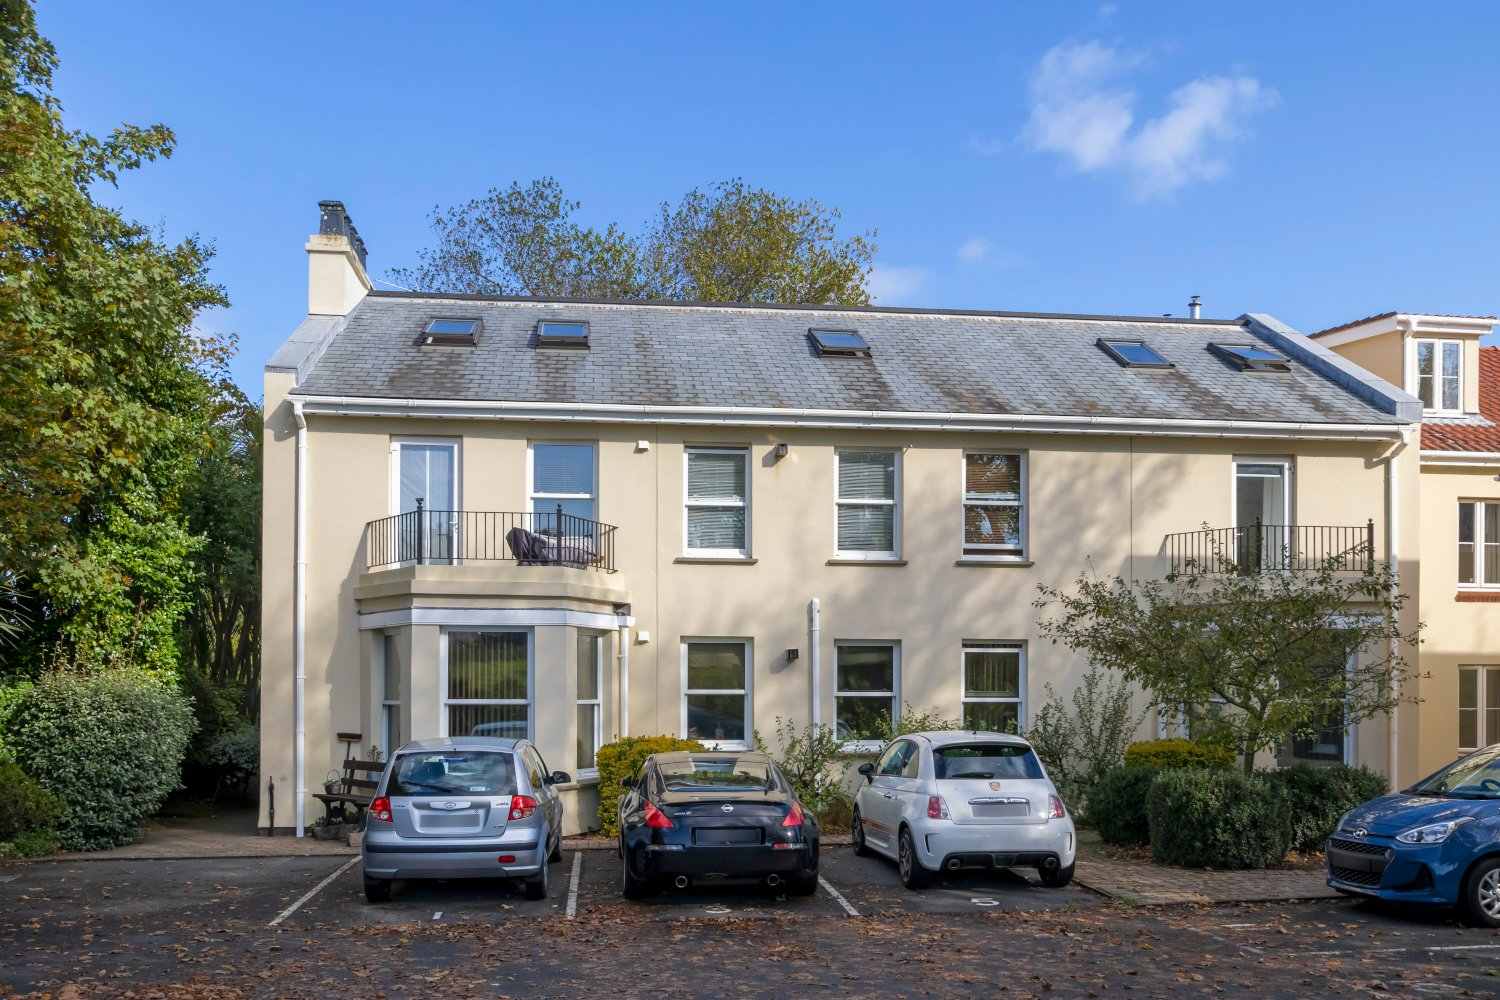 Flat 3, Meadow Grove Footes Lane, St Peter Port